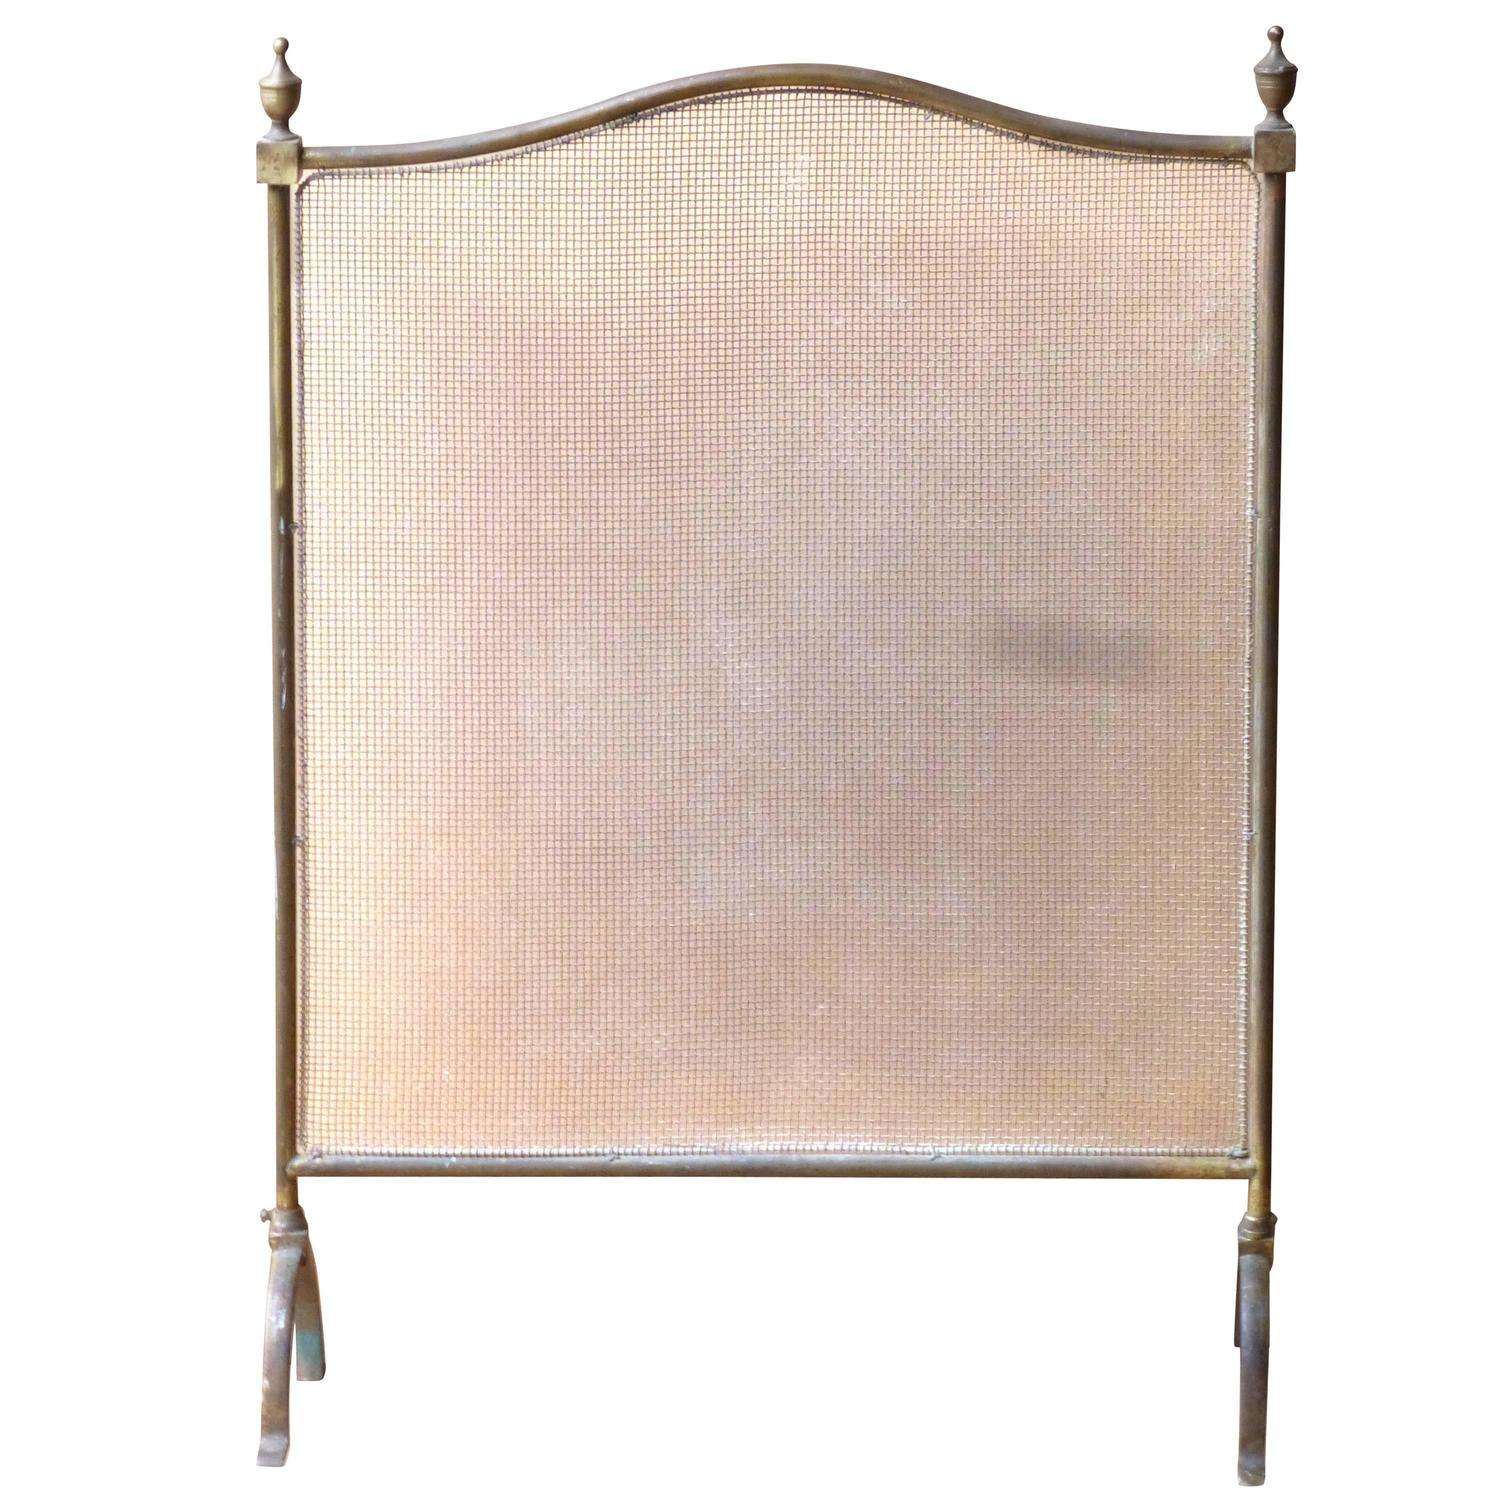 century brass and wirework fireplace screen fire screen at 1stdibs